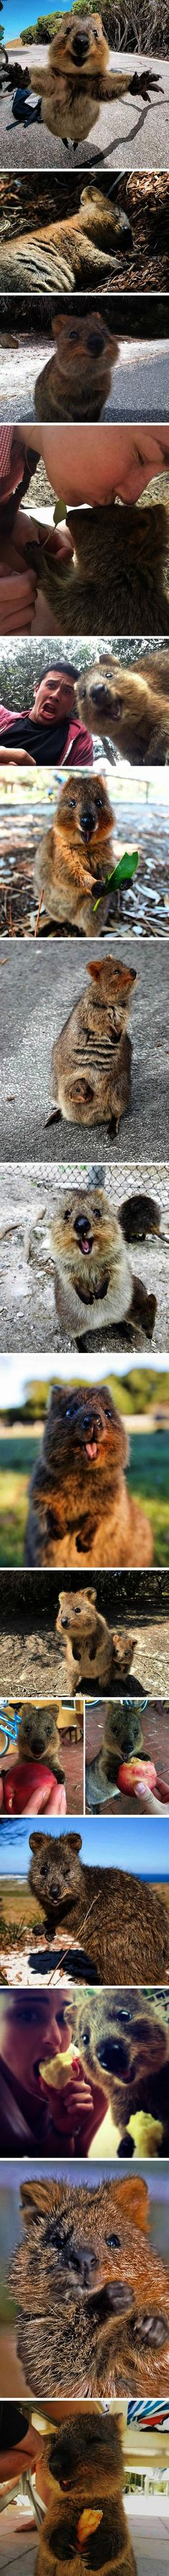 best cute animals images on pinterest in fluffy animals